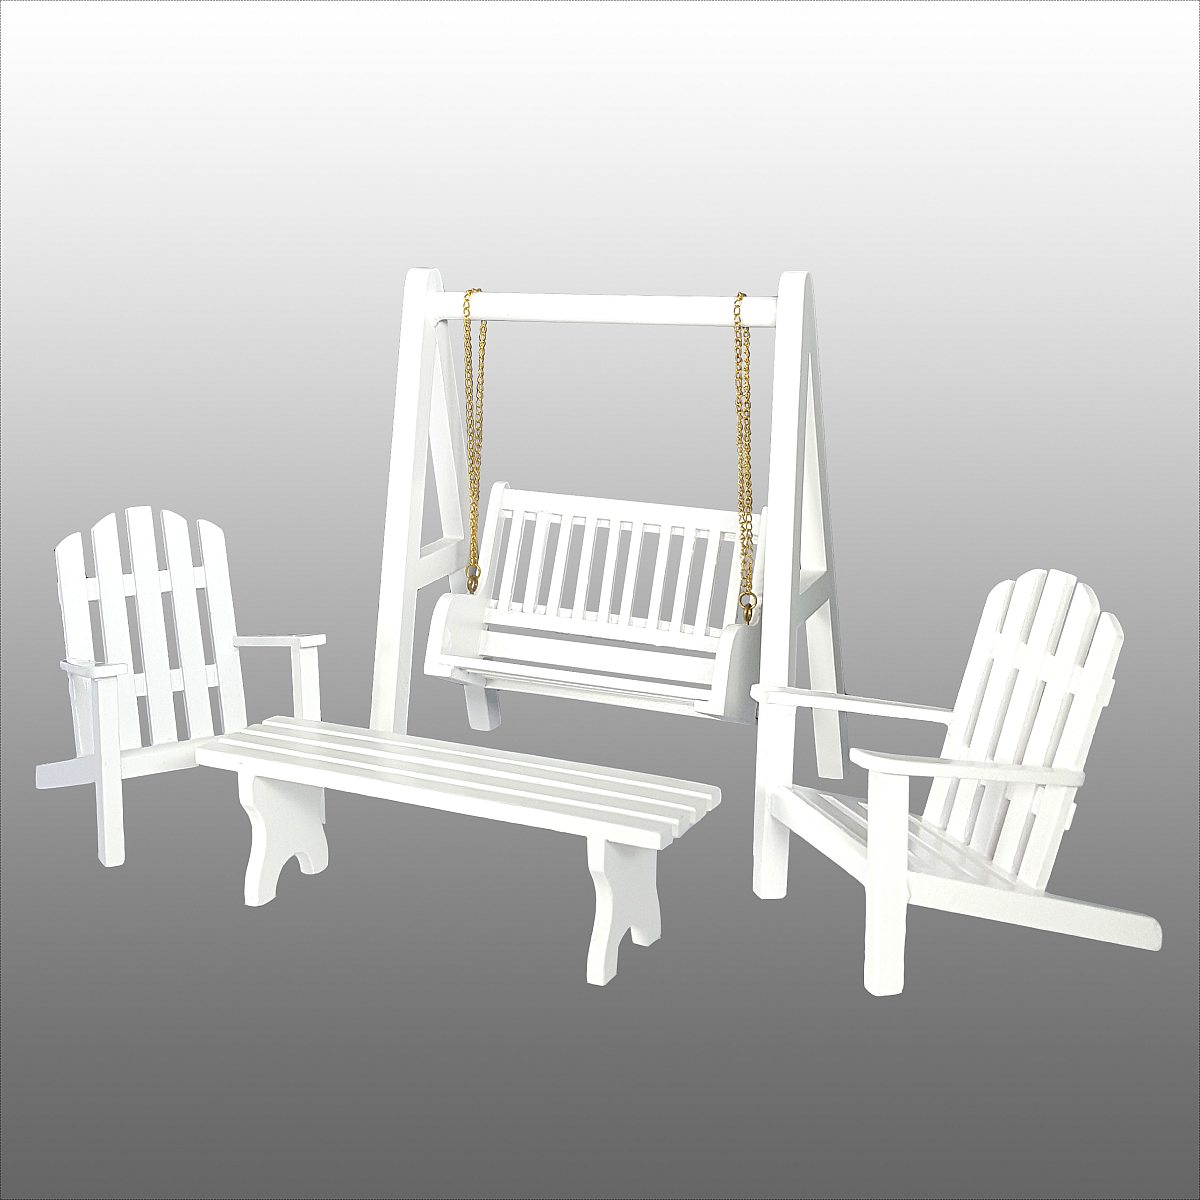 Strand deck chair, white 完成品・ガーデン家具(アームチェア2脚、テーブル、ポーチスイング)